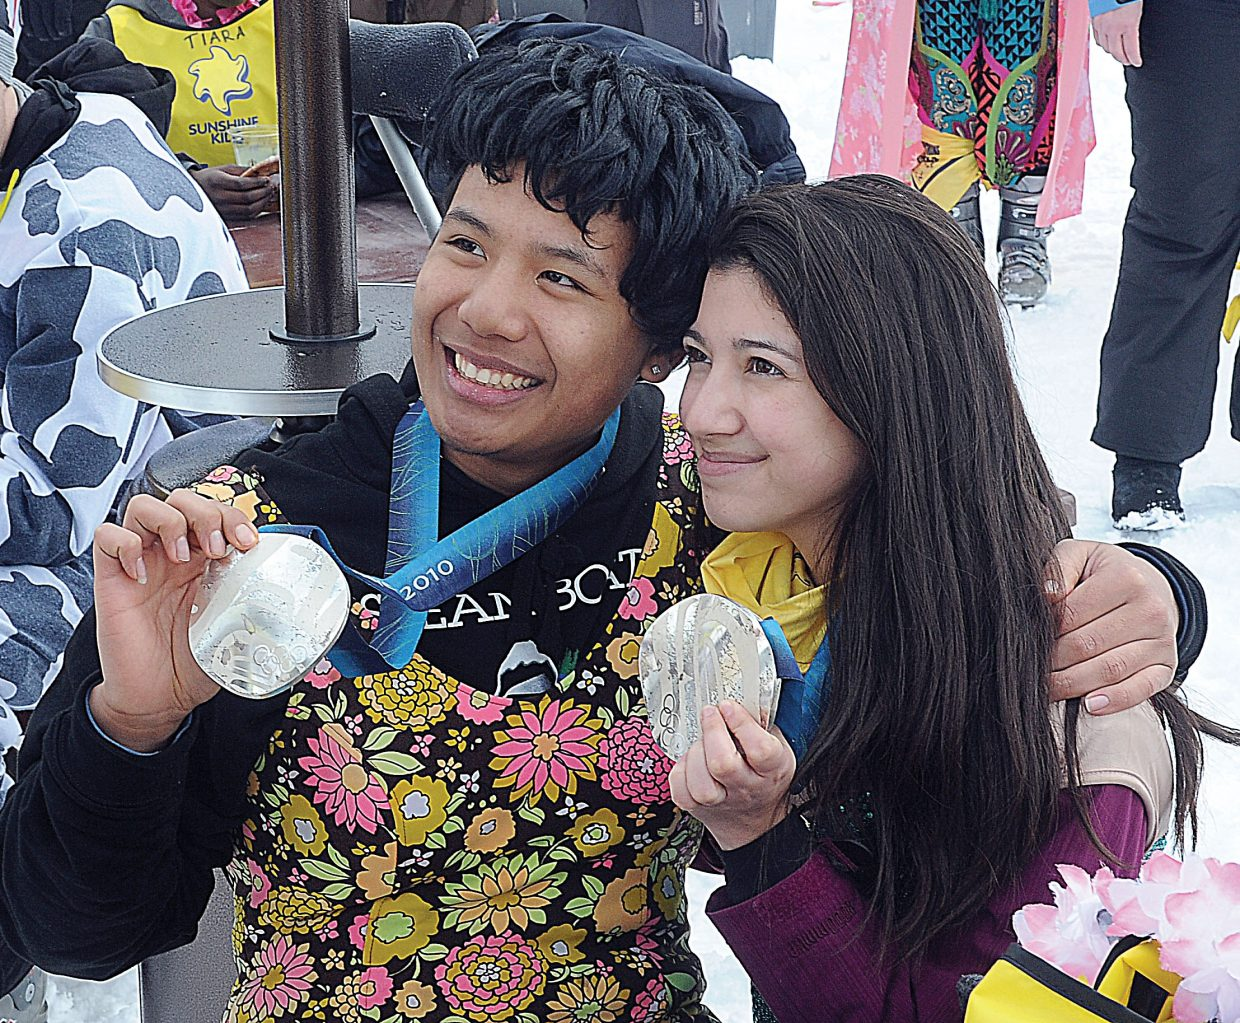 Mitchell Xayapraseuth, or Alaska, and Emily Garcia, of Texas, pose with Johnny Spillane's Olympic silver medals Friday at the Sunshine Kids annual Winter Games at Steamboat Ski Area. The Sunshine Kids is a nonprofit organization dedicated to children with cancer. It provides positive group activities and emotional support for young cancer patients and brings a group to Steamboat Ski Area each year.